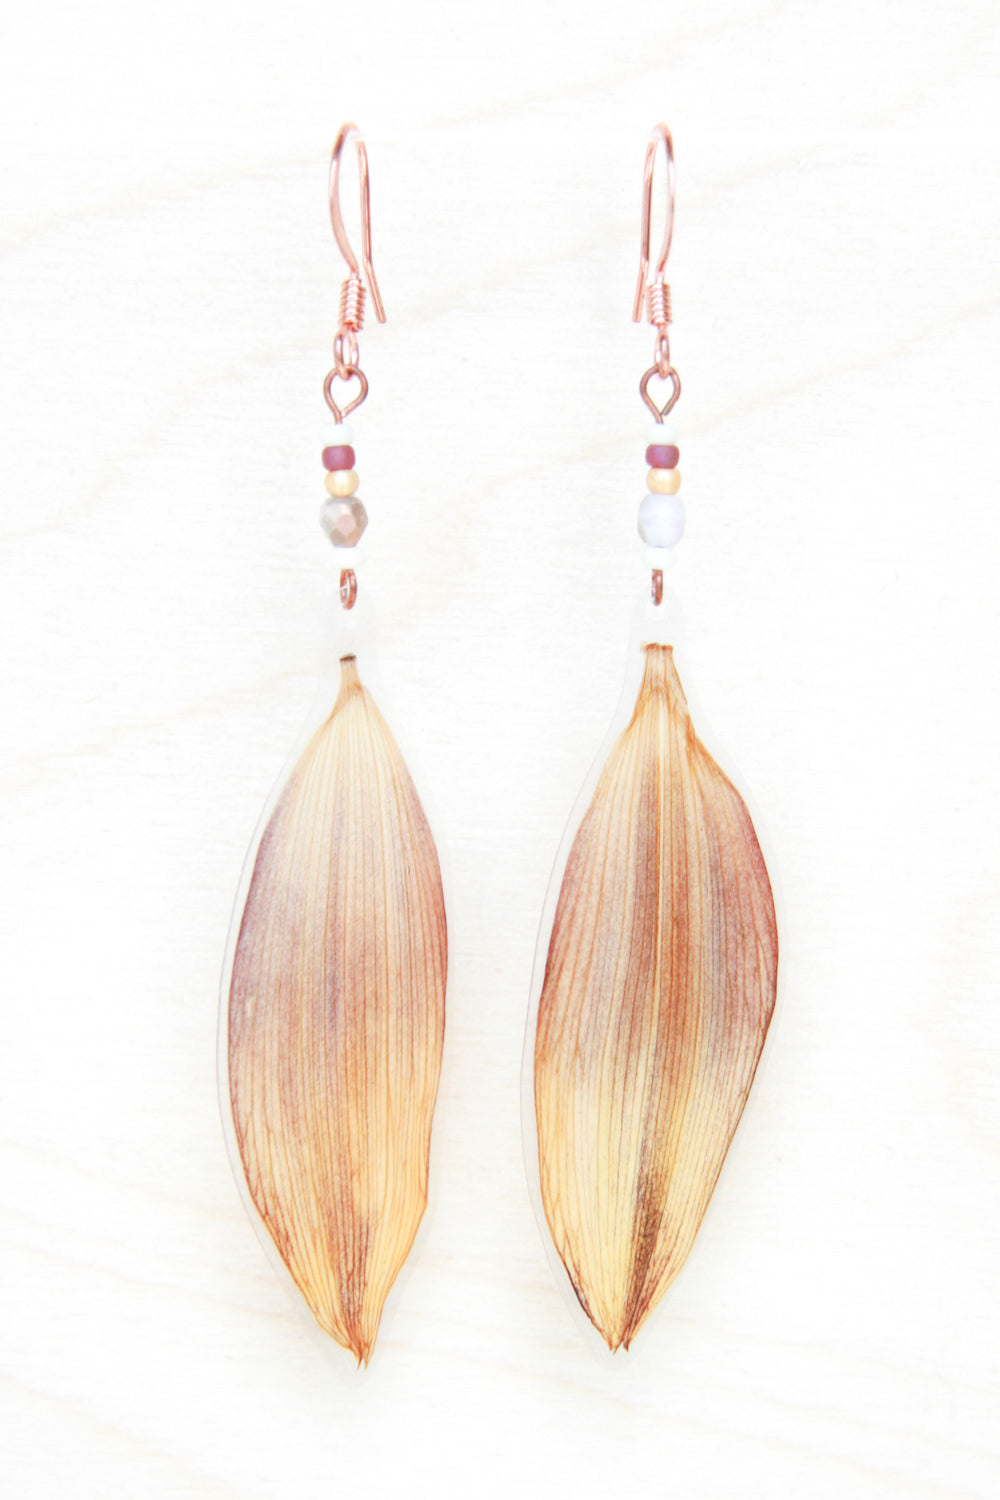 Brown & Yellow Sunflower Pressed Flower Earrings with Cranberry, Gold & Cream Glass Beads